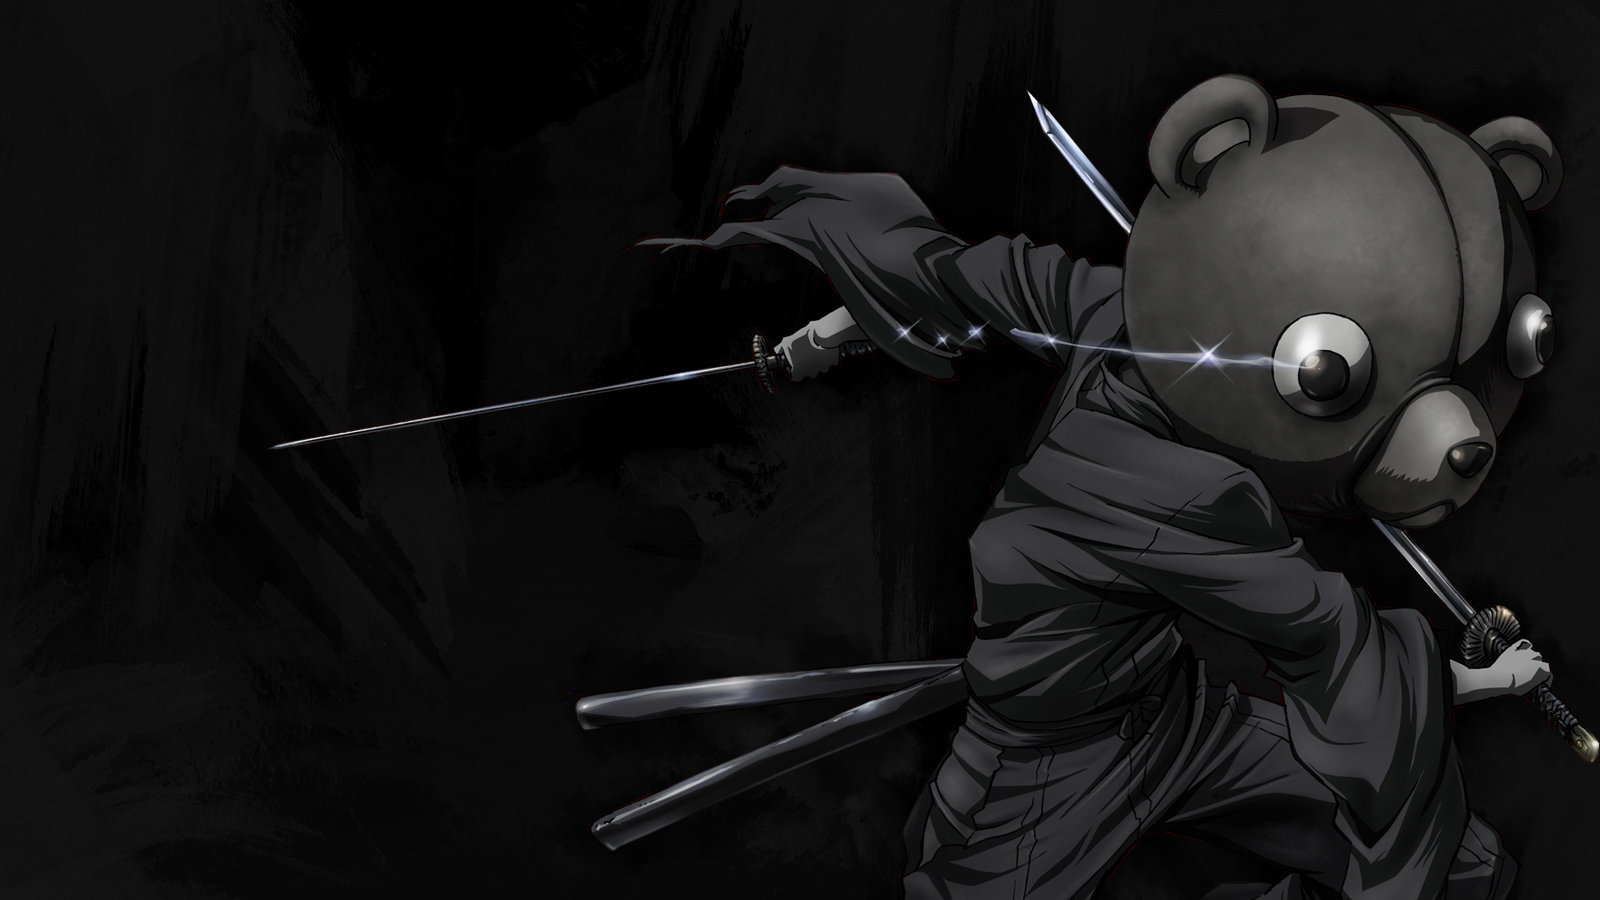 Download hd 1600x900 Afro Samurai desktop background ID:329122 for free